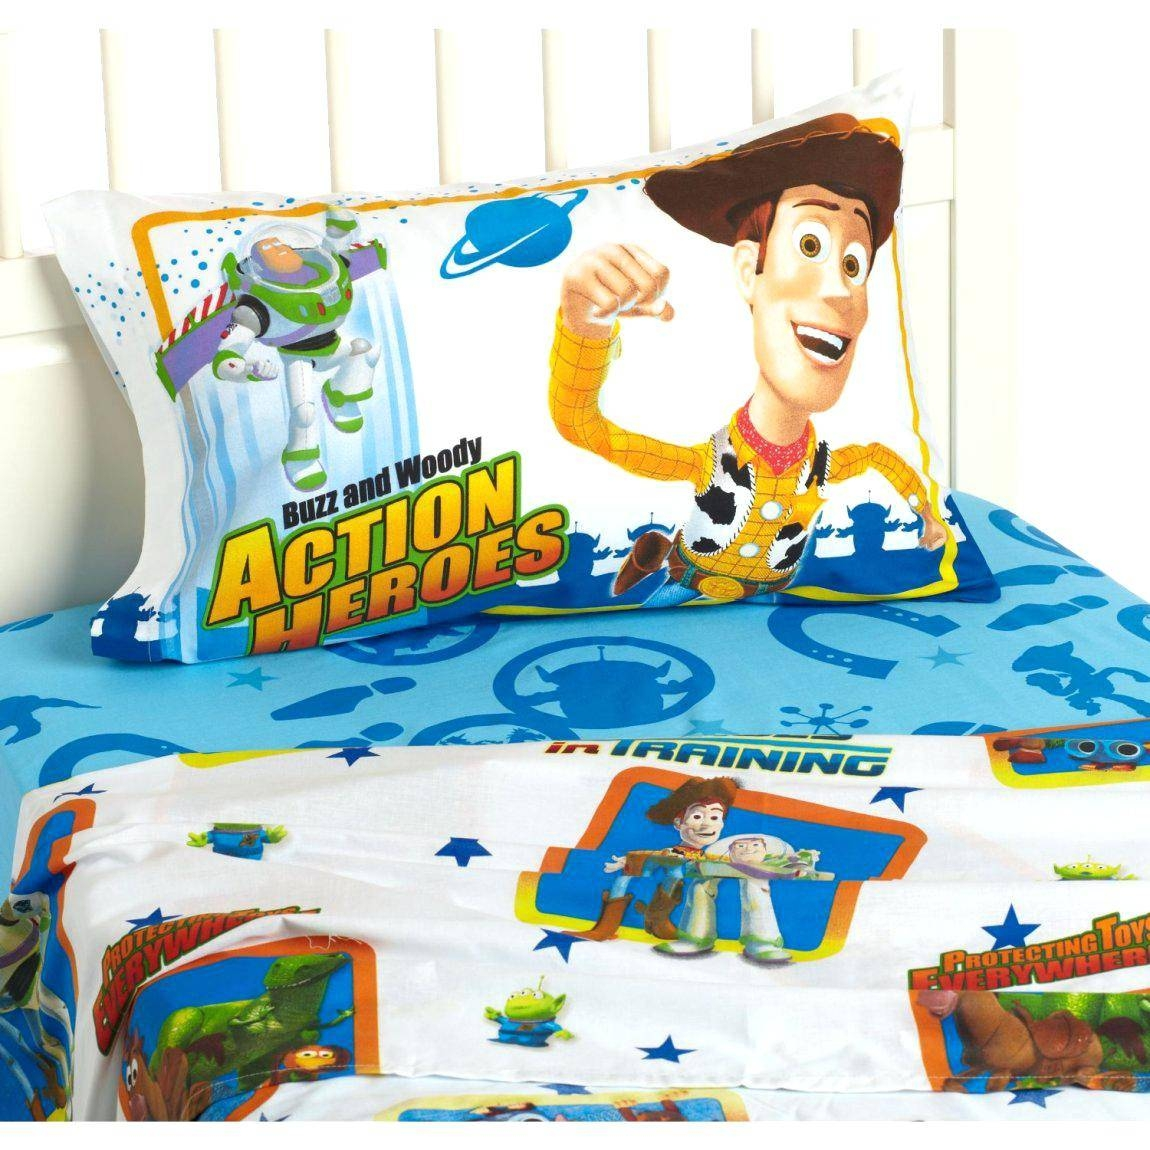 Wall Decor : 111 Image Of Toy Story Table Decorations Modern Image Intended For Current Toy Story Wall Stickers (View 16 of 25)